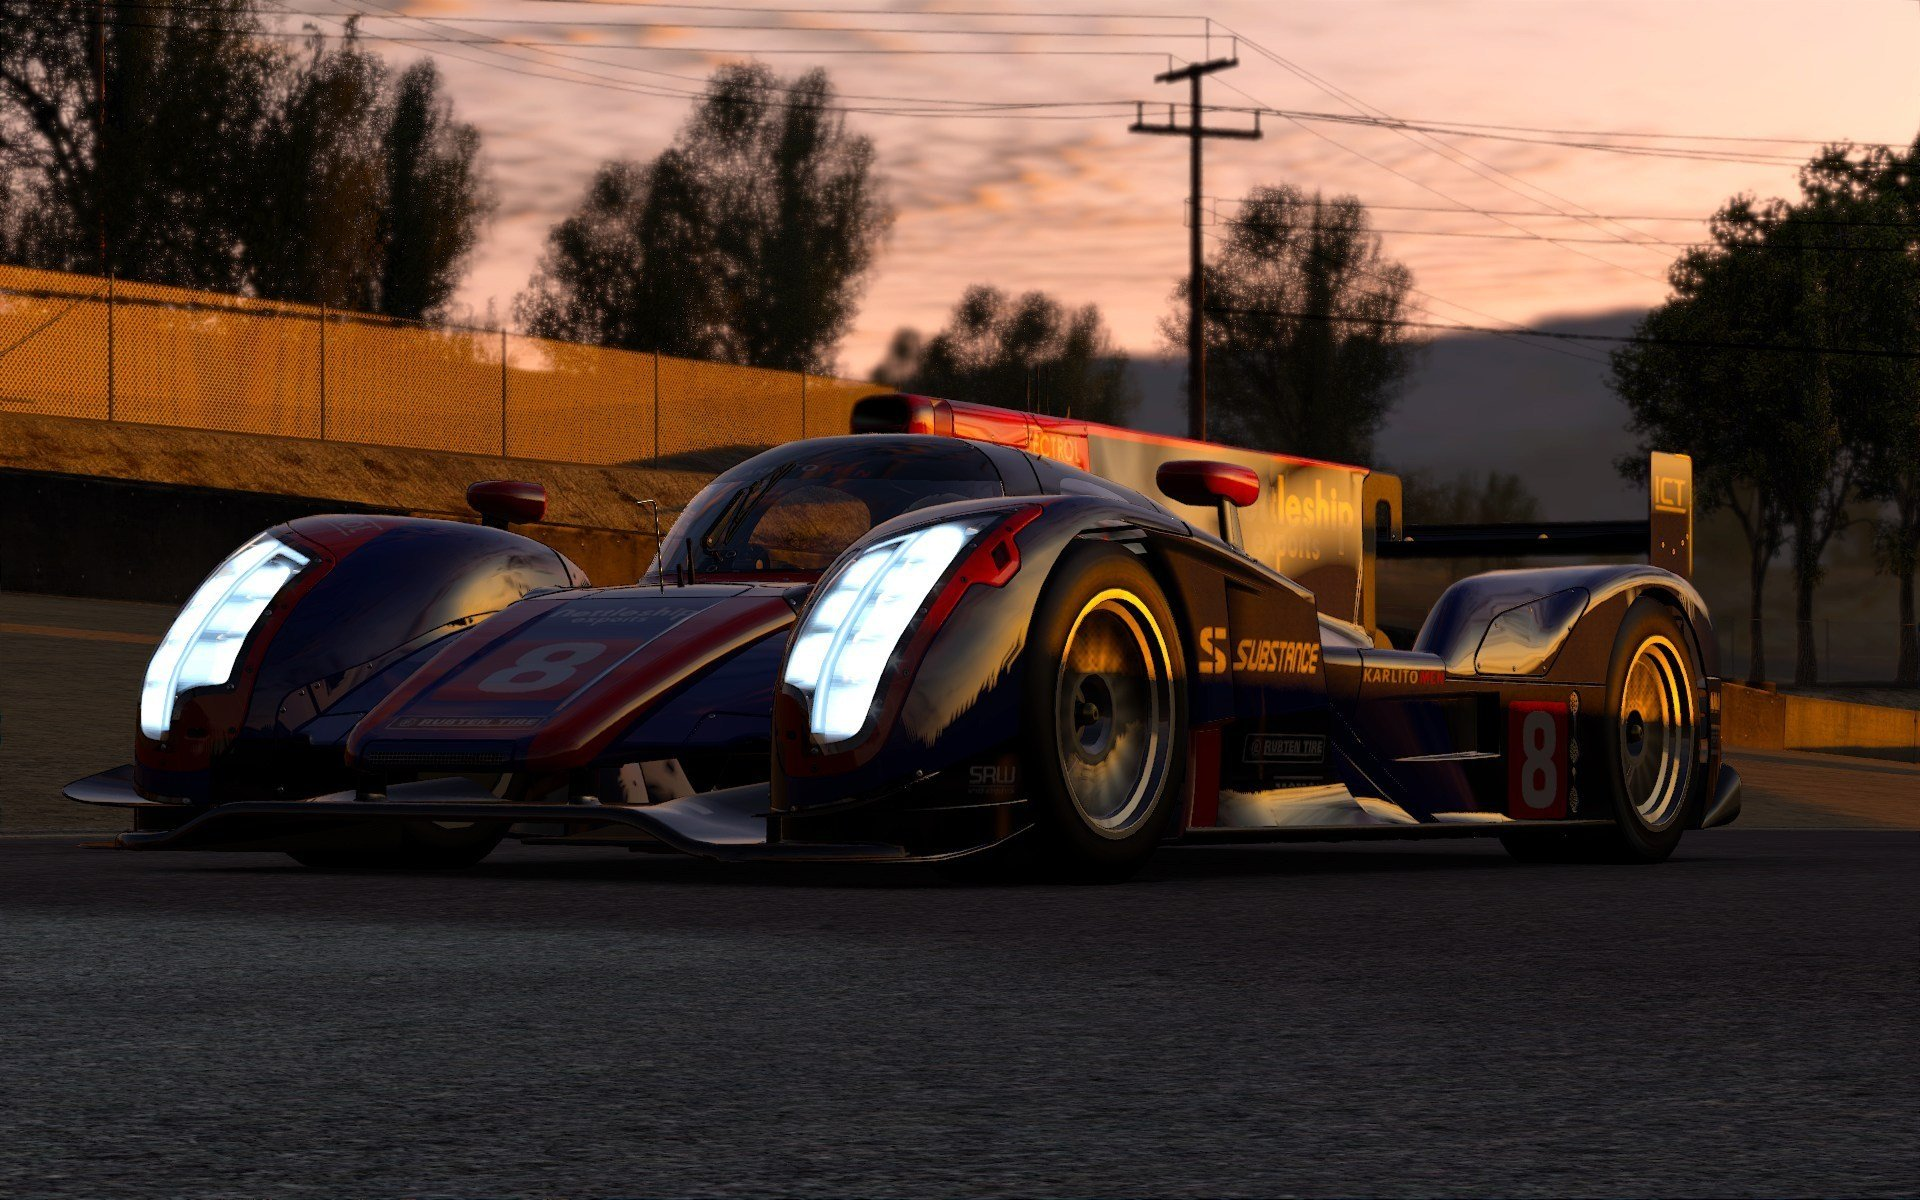 Latest Car Project Cars Video Games Audi Racing Wallpapers Hd Free Download